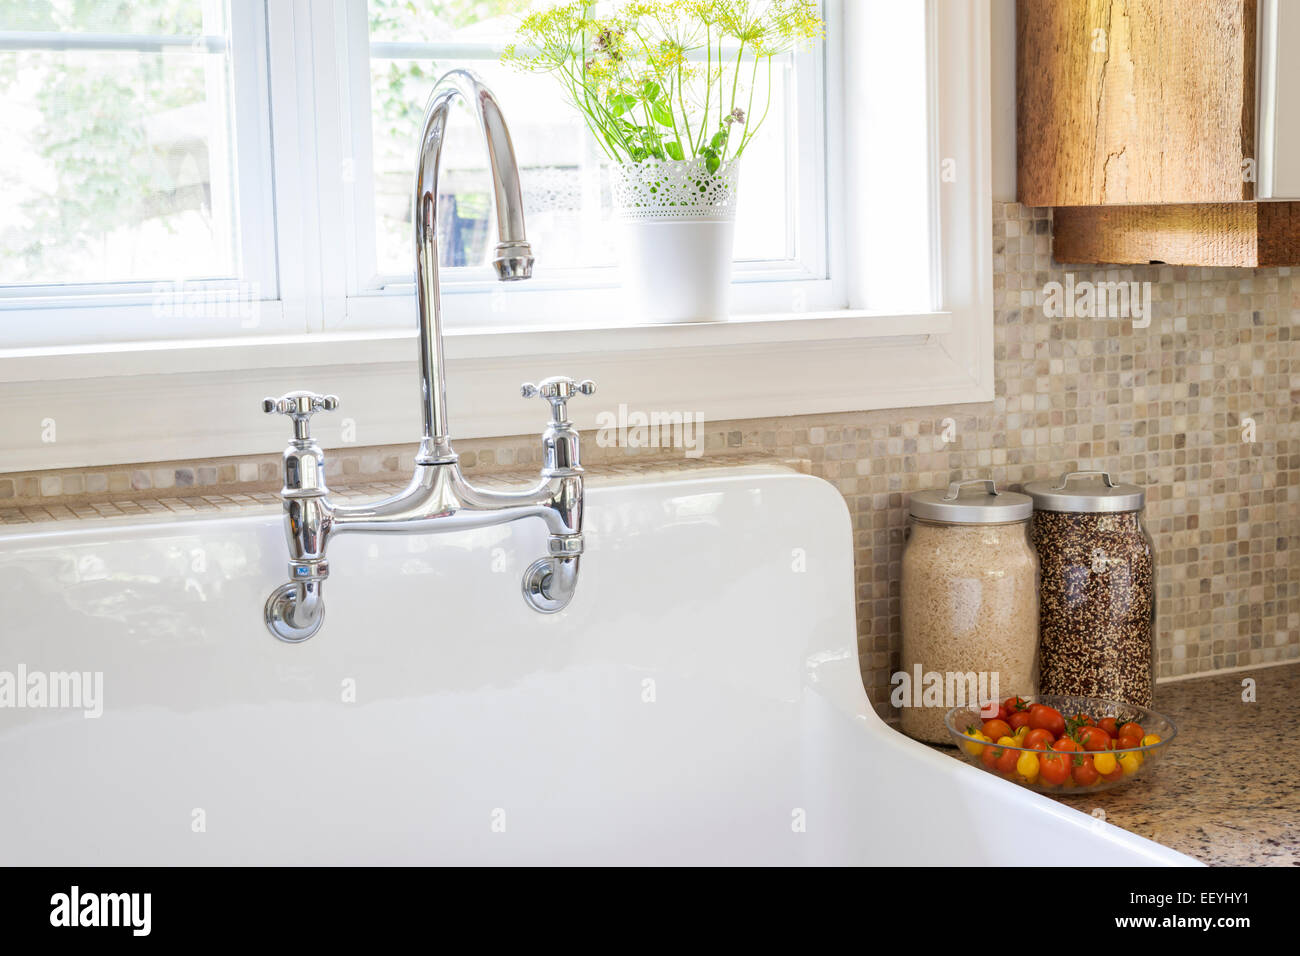 https www alamy com stock photo rustic white porcelain kitchen sink with curved faucet and tile backsplash 78053445 html